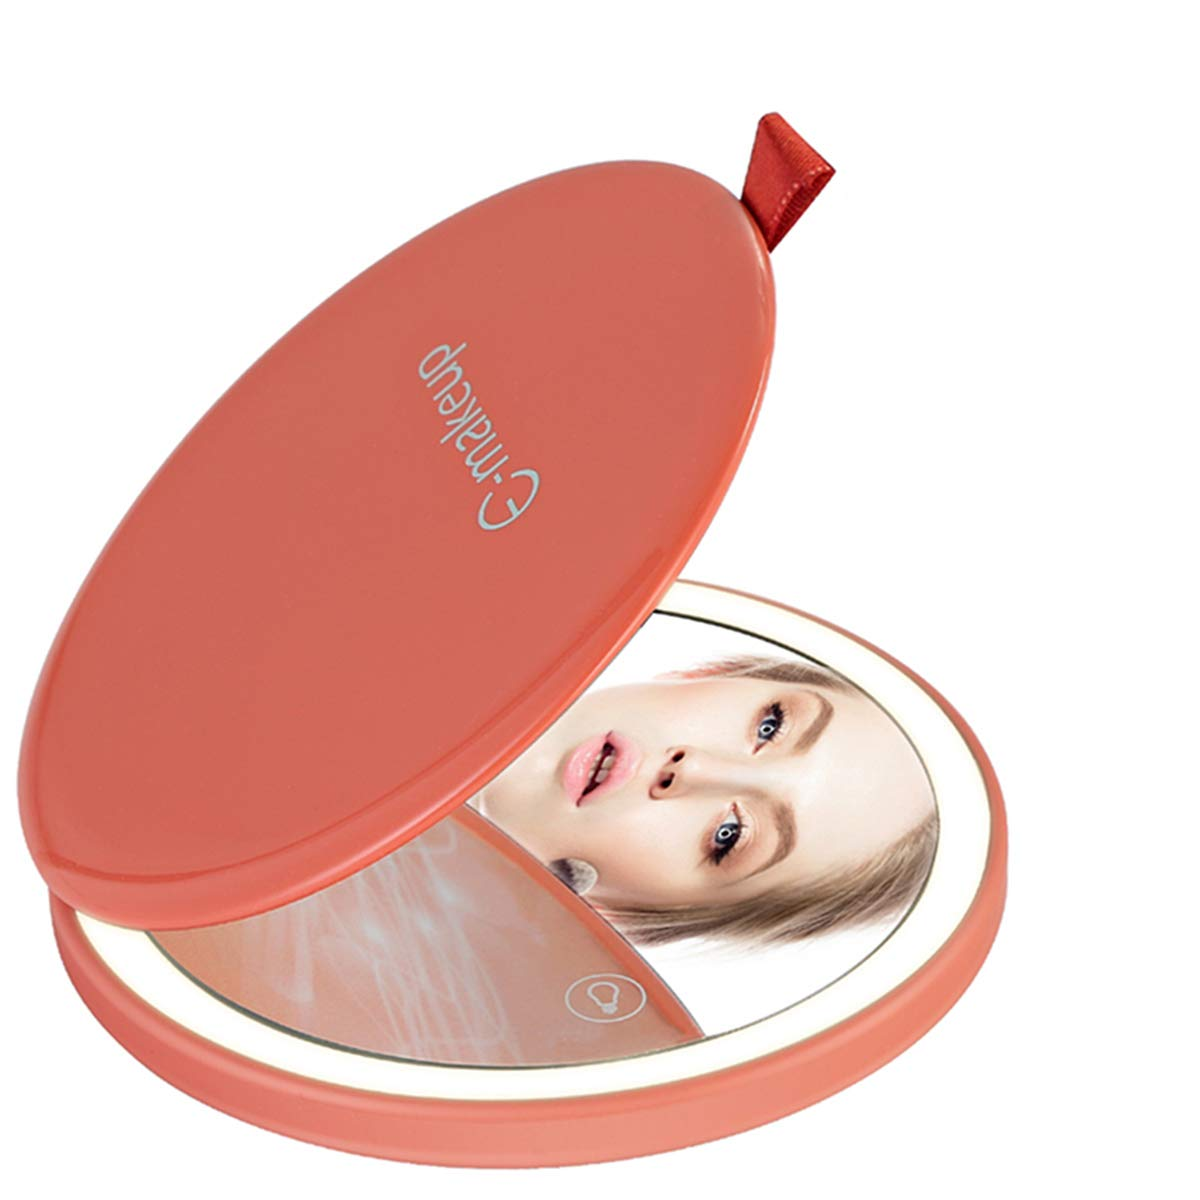 Travel Mirror Lighted Makeup Light New life with Compact Re Reservation